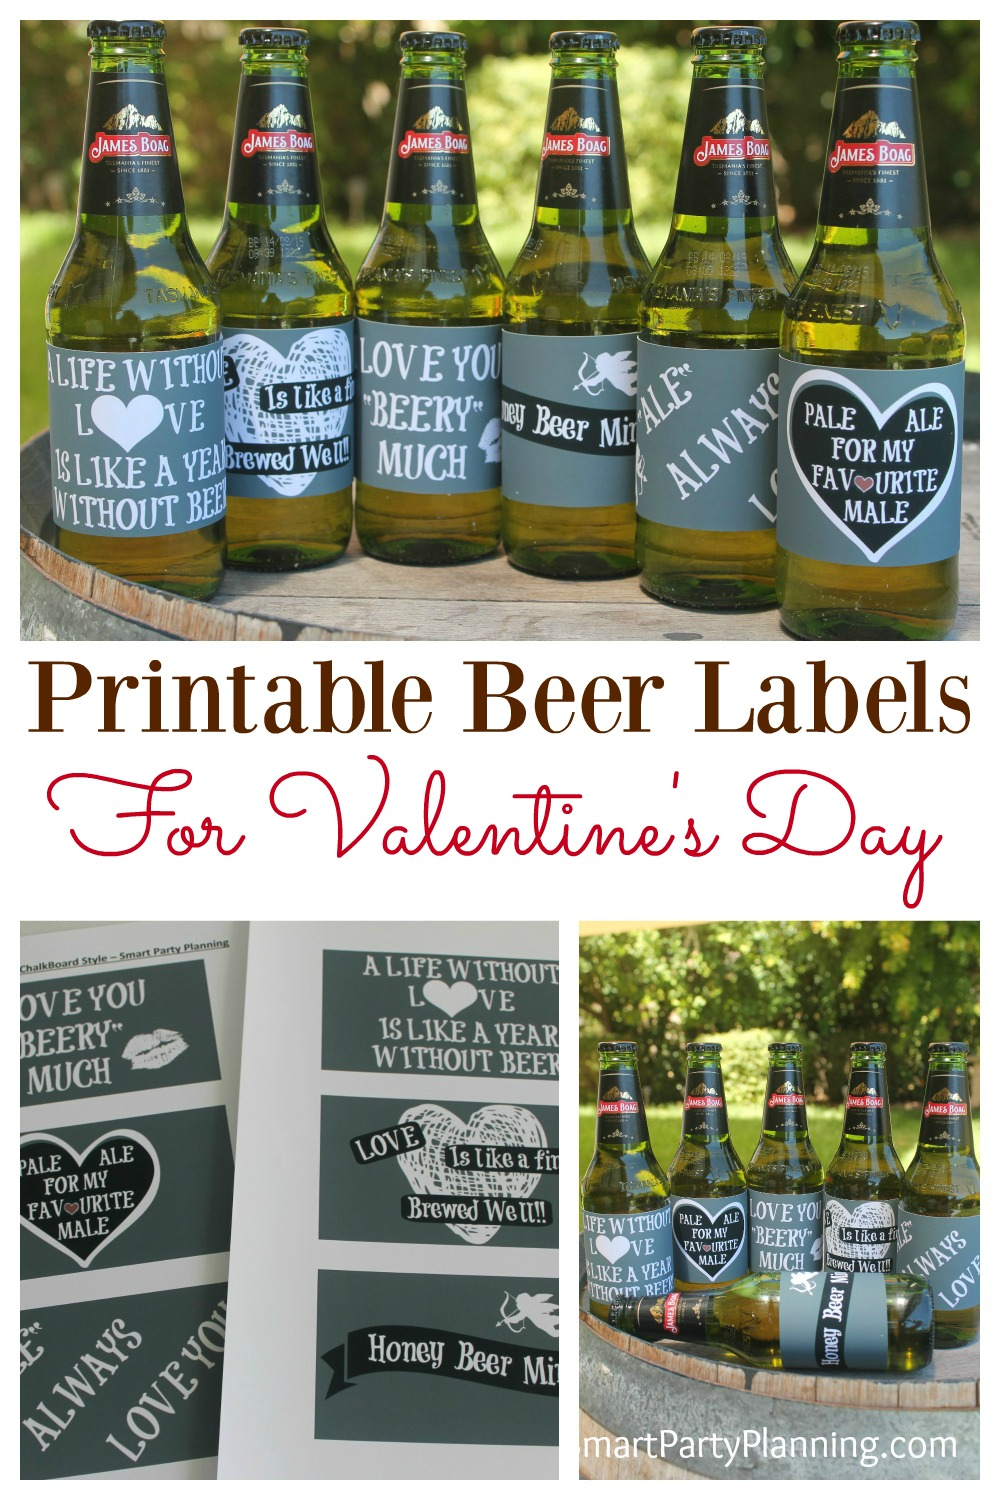 photograph regarding Printable Beer Labels referred to as The Most straightforward Layout Ornamental Labels For Valentines Working day